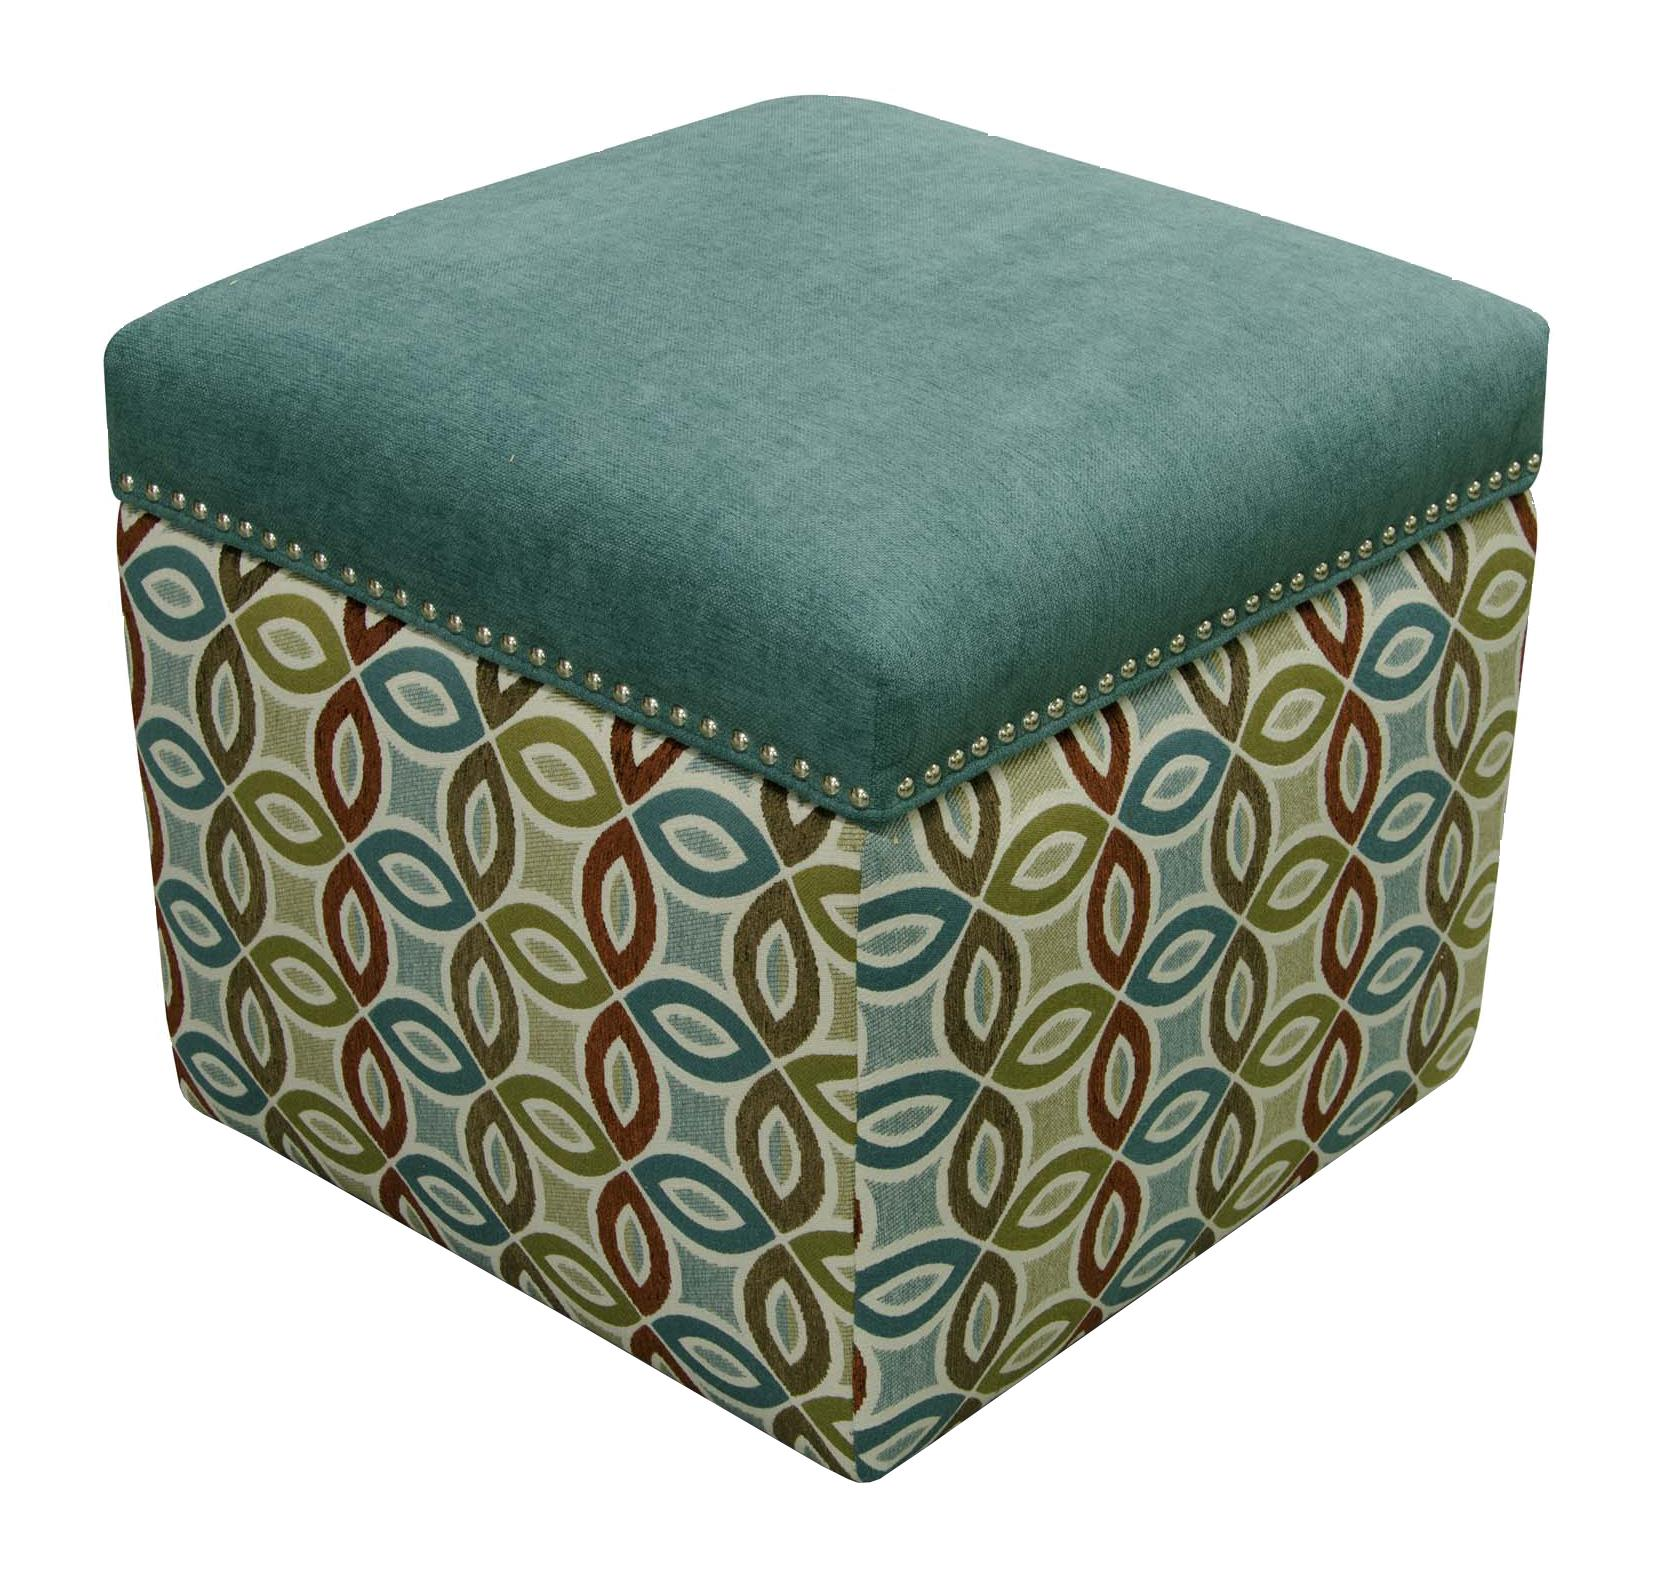 England Parson Storage Ottoman with Nailhead Trim - Item Number: 2F0081N-7346